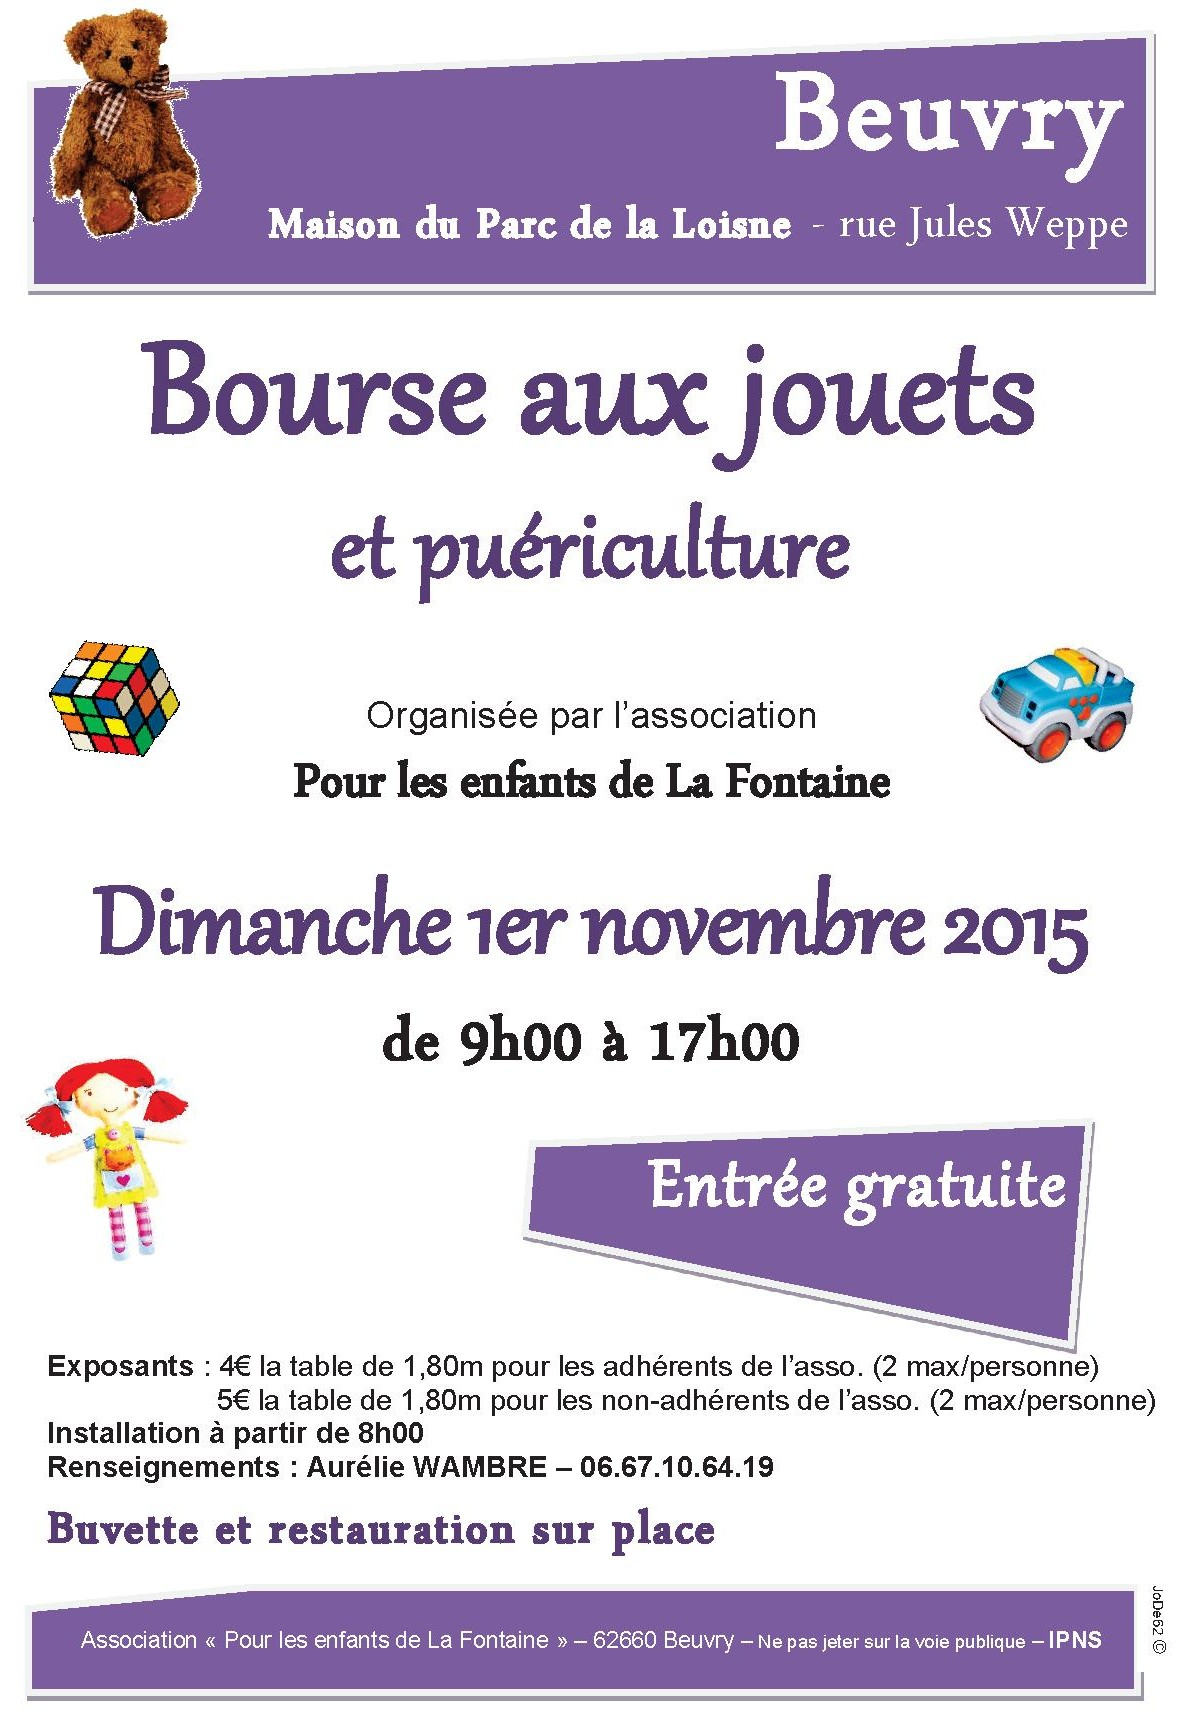 beuvry bourse aux jouets 2015